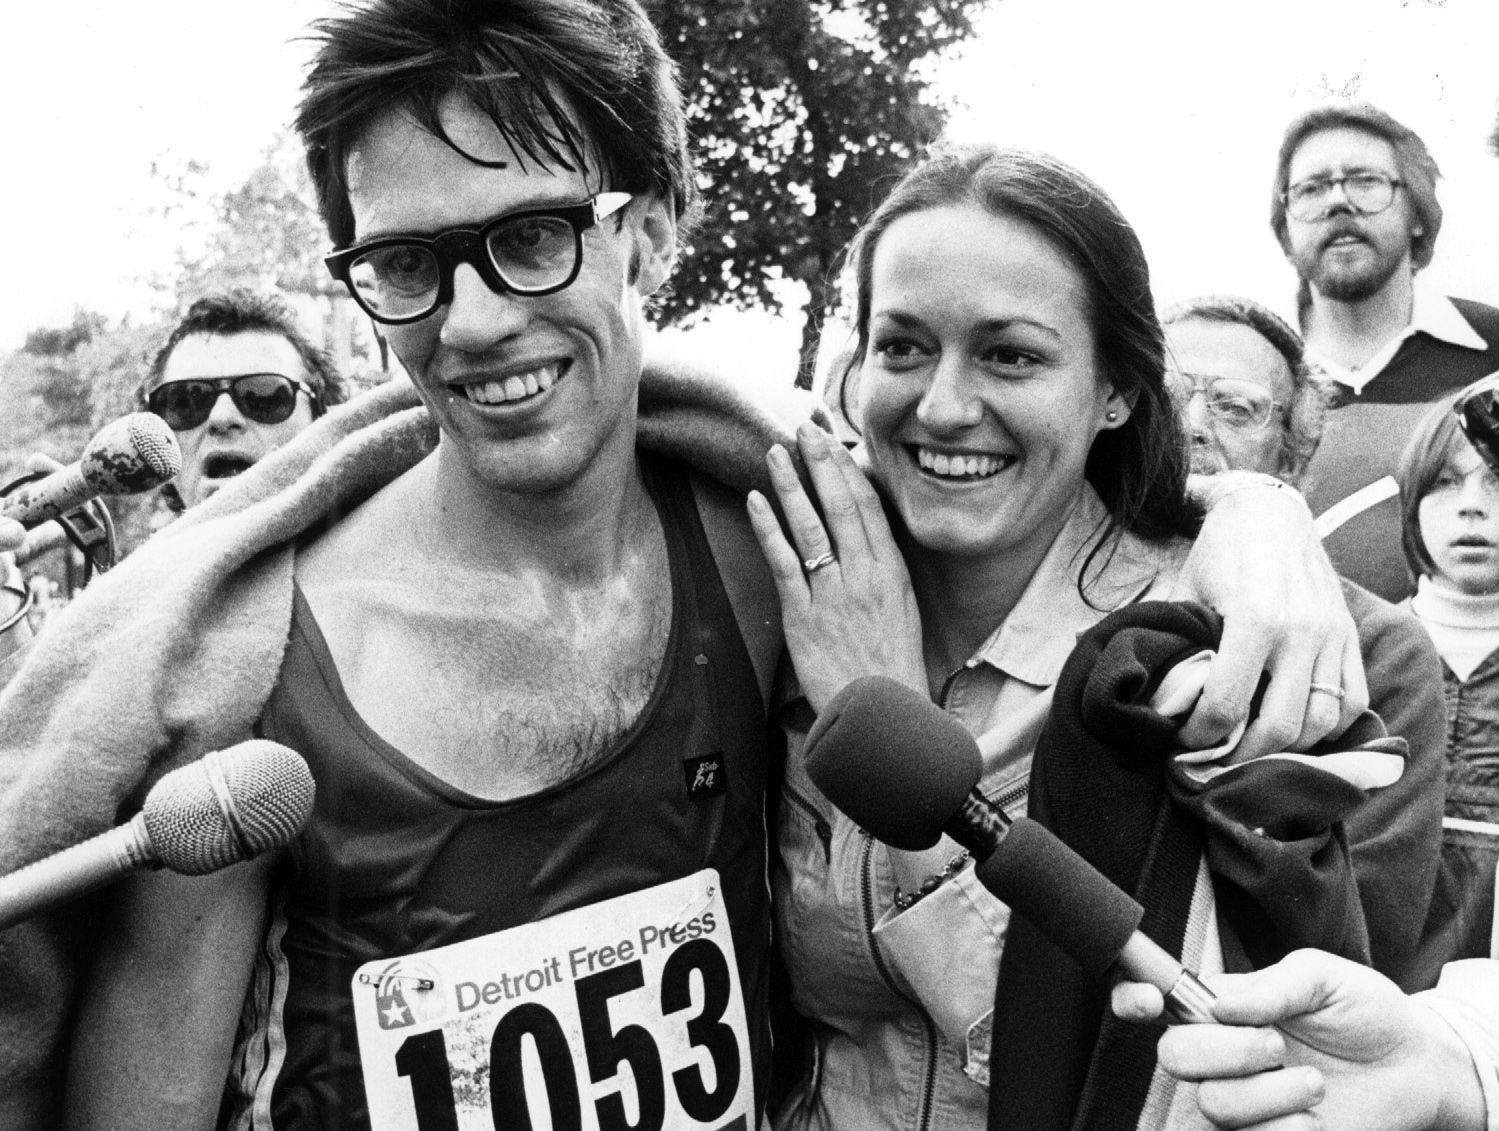 Robert McOmber just after winning the men's division of the first Detroit Free Press International Marathon in 1978.